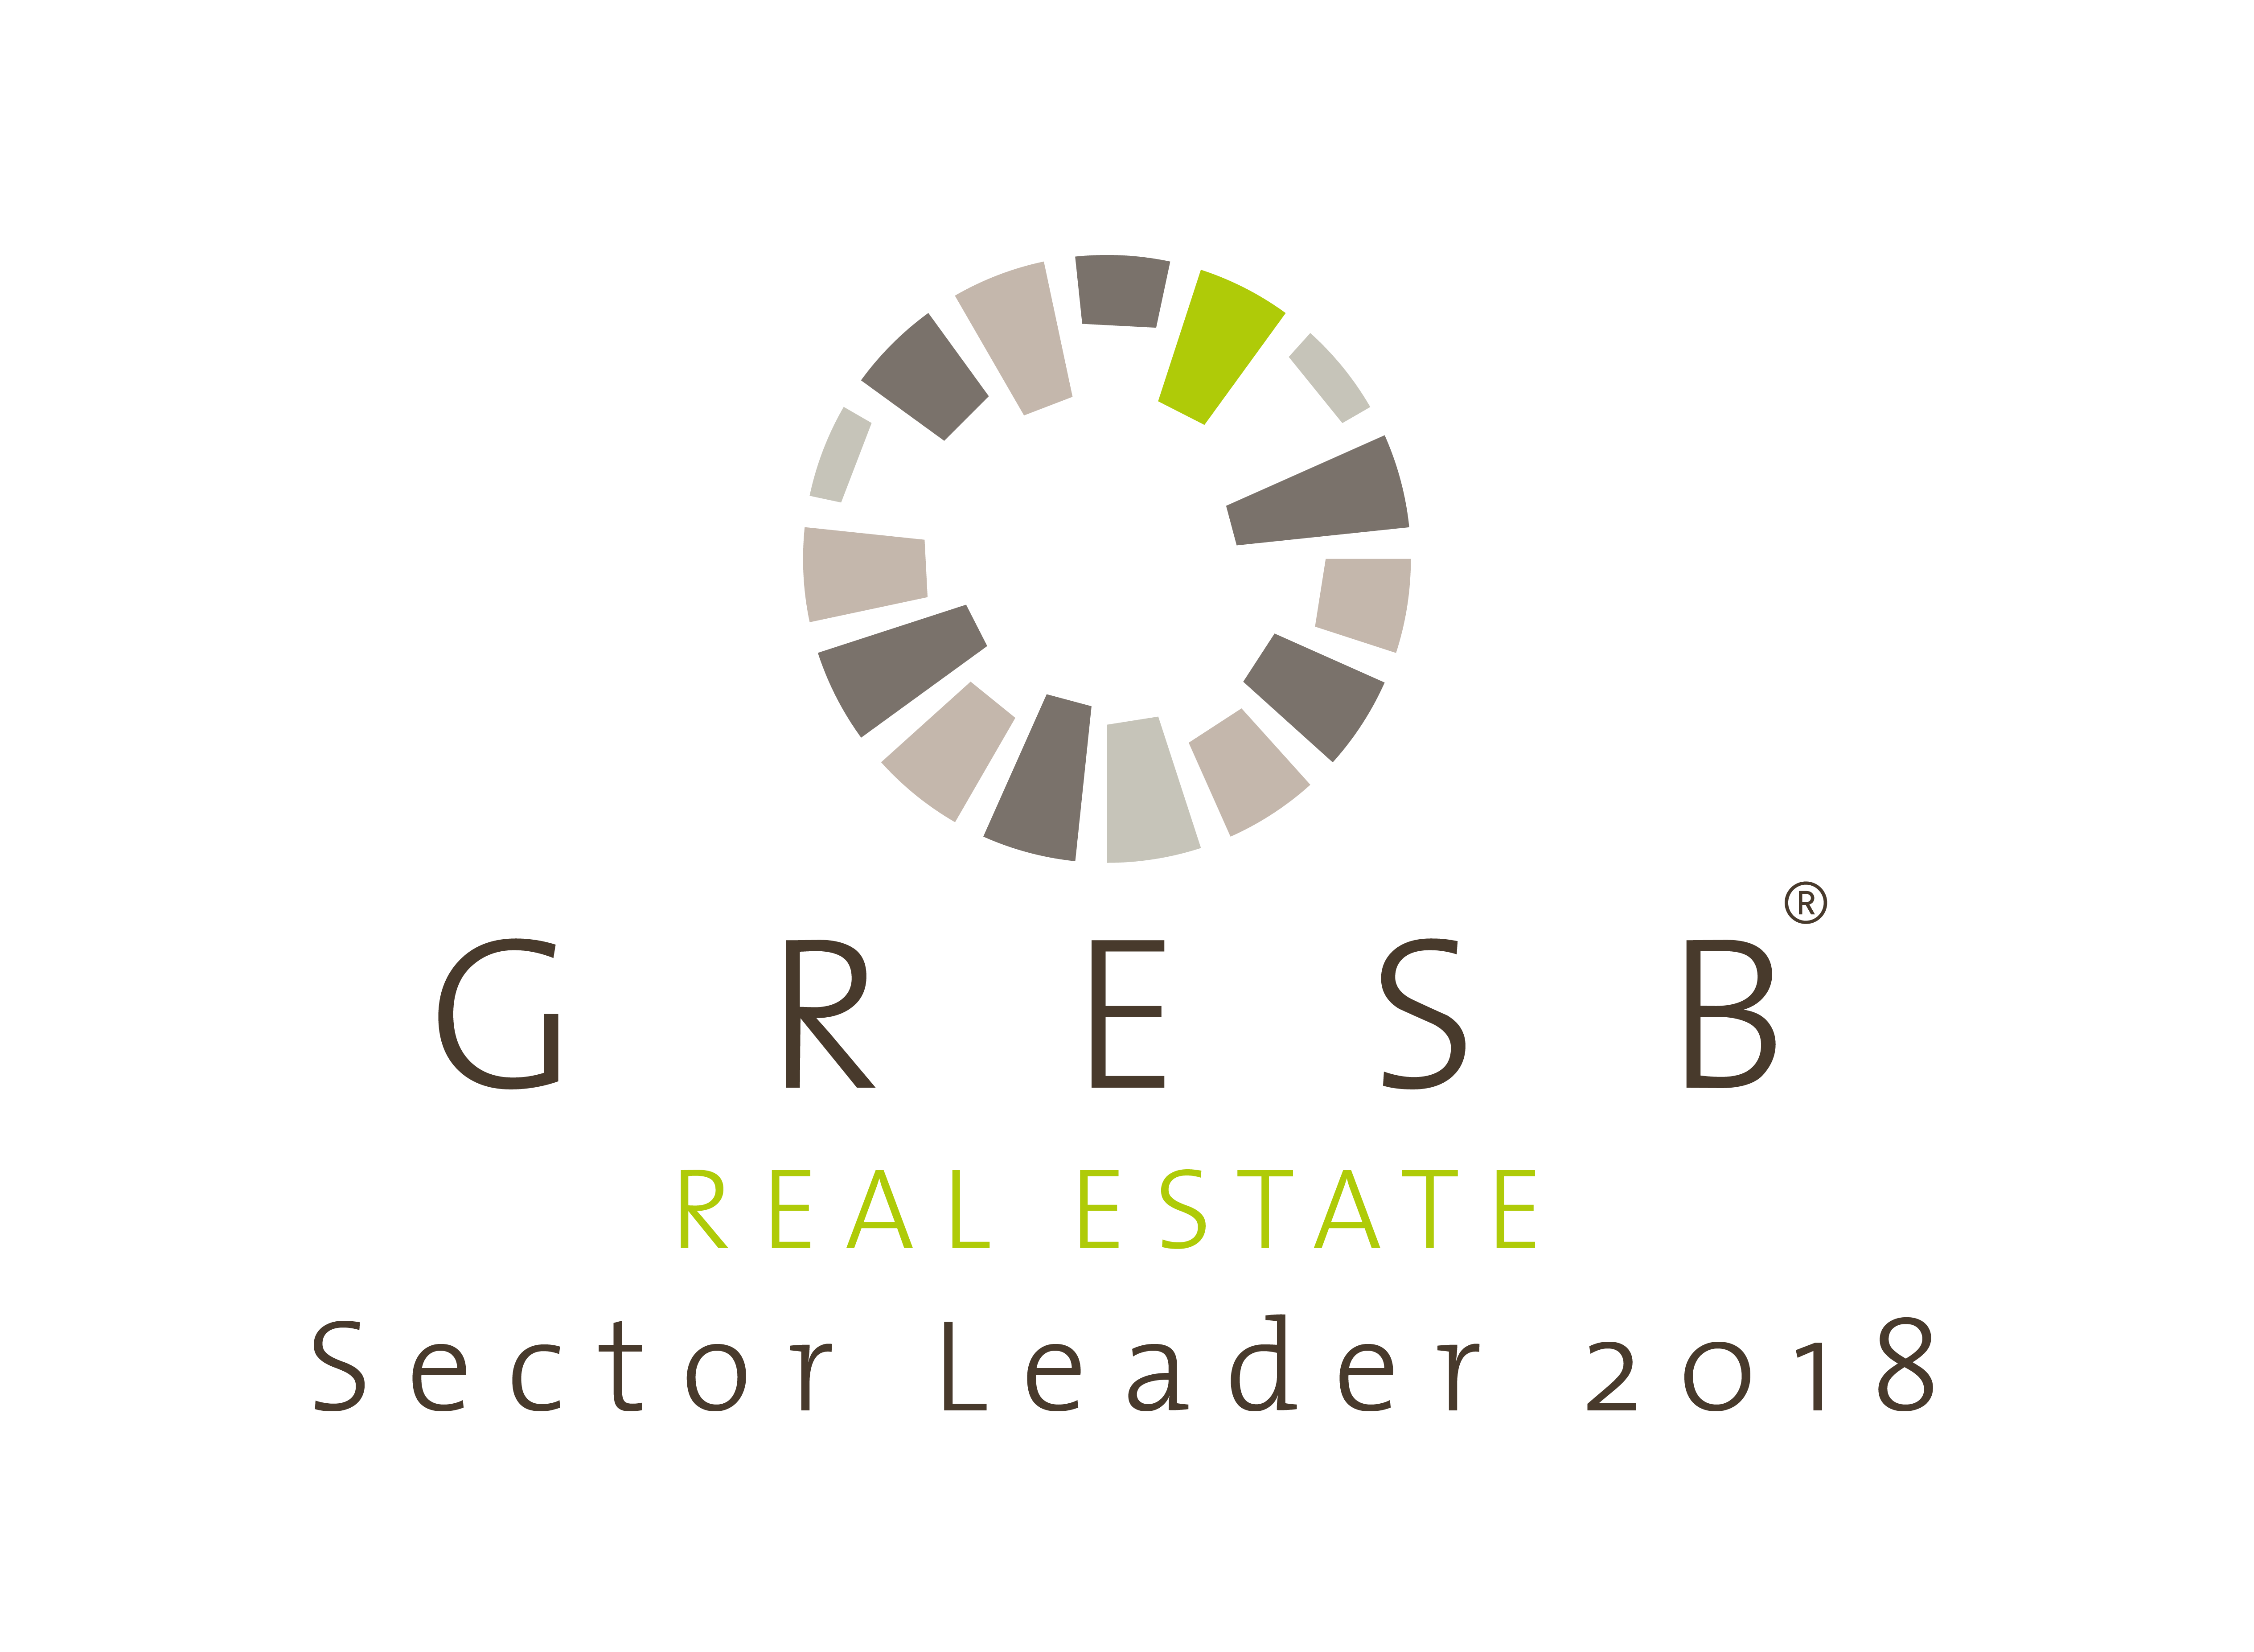 GRESB_RE_2018_Sector_Leader.png?hash=10269cbbb8349f45